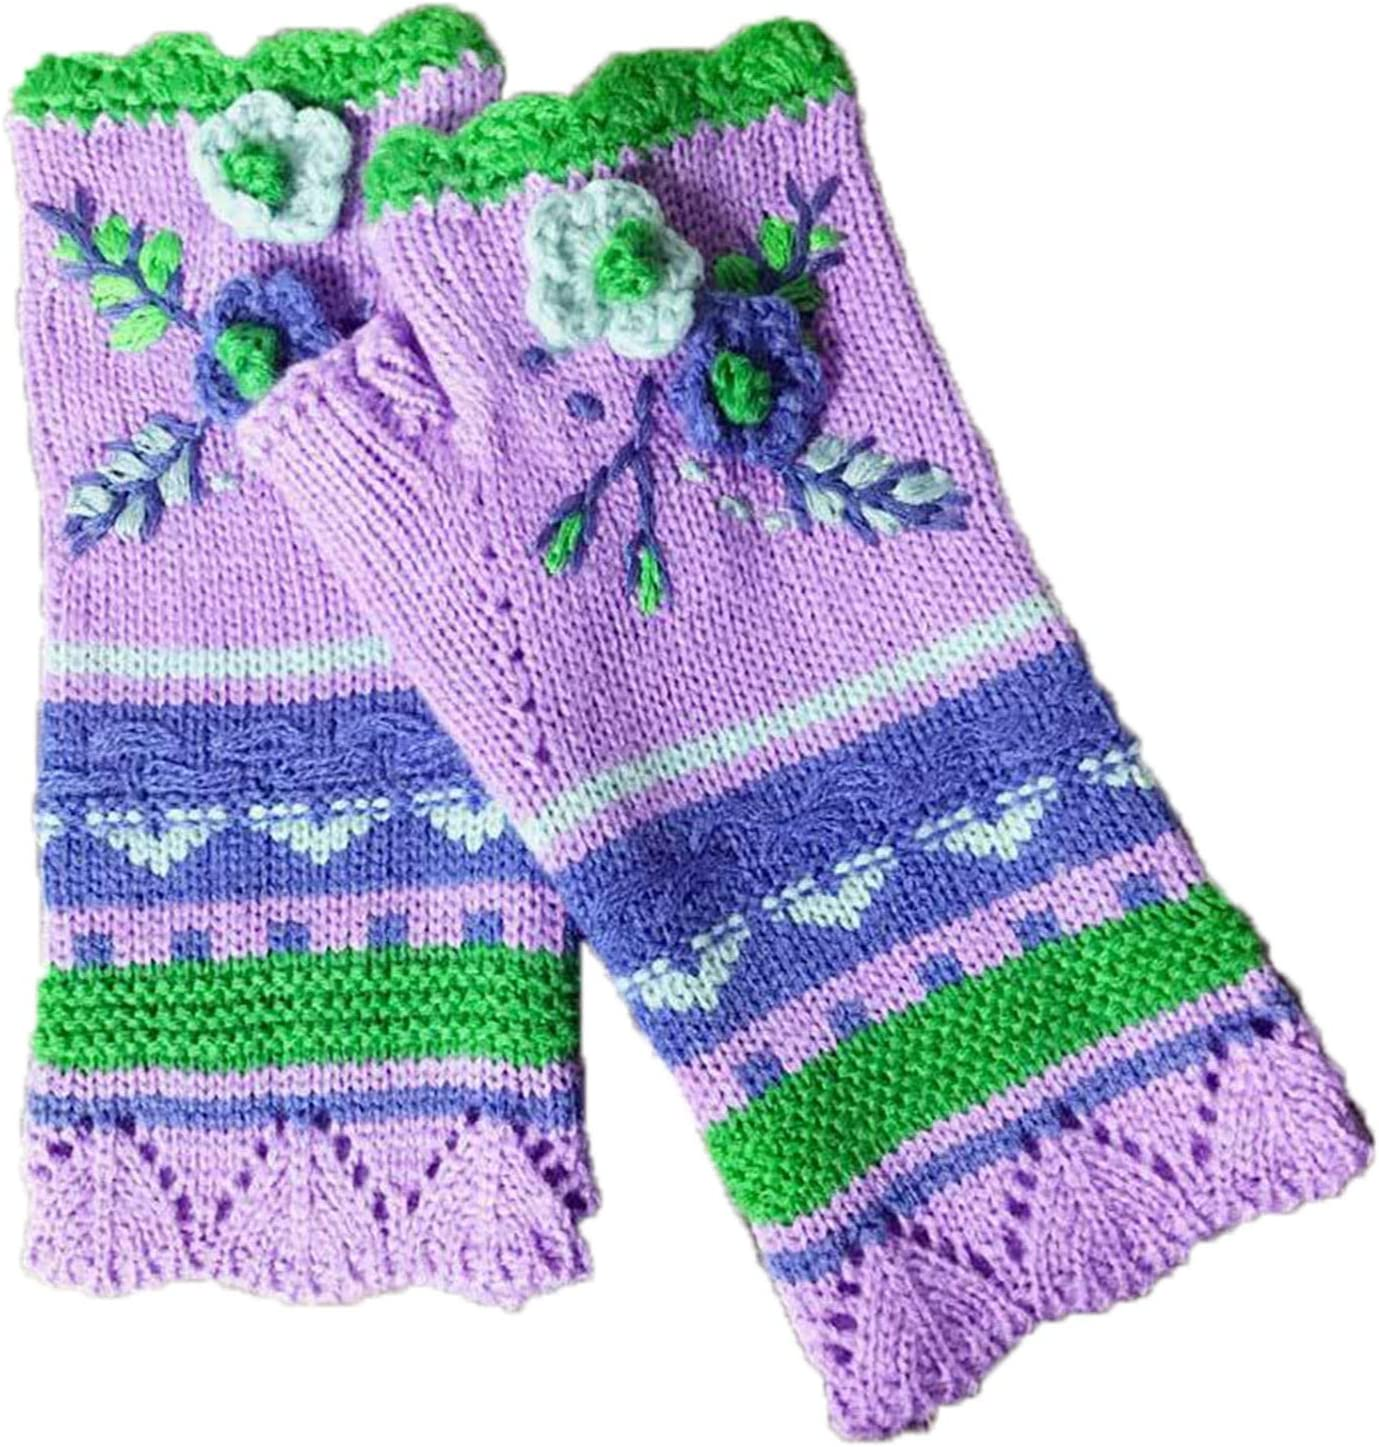 Women's Fingerless Gloves Vintage Small Flower Multicolor Knitted Warm Gloves Hand Crochet Arm Warmers for Winter Cold Weather (Green)